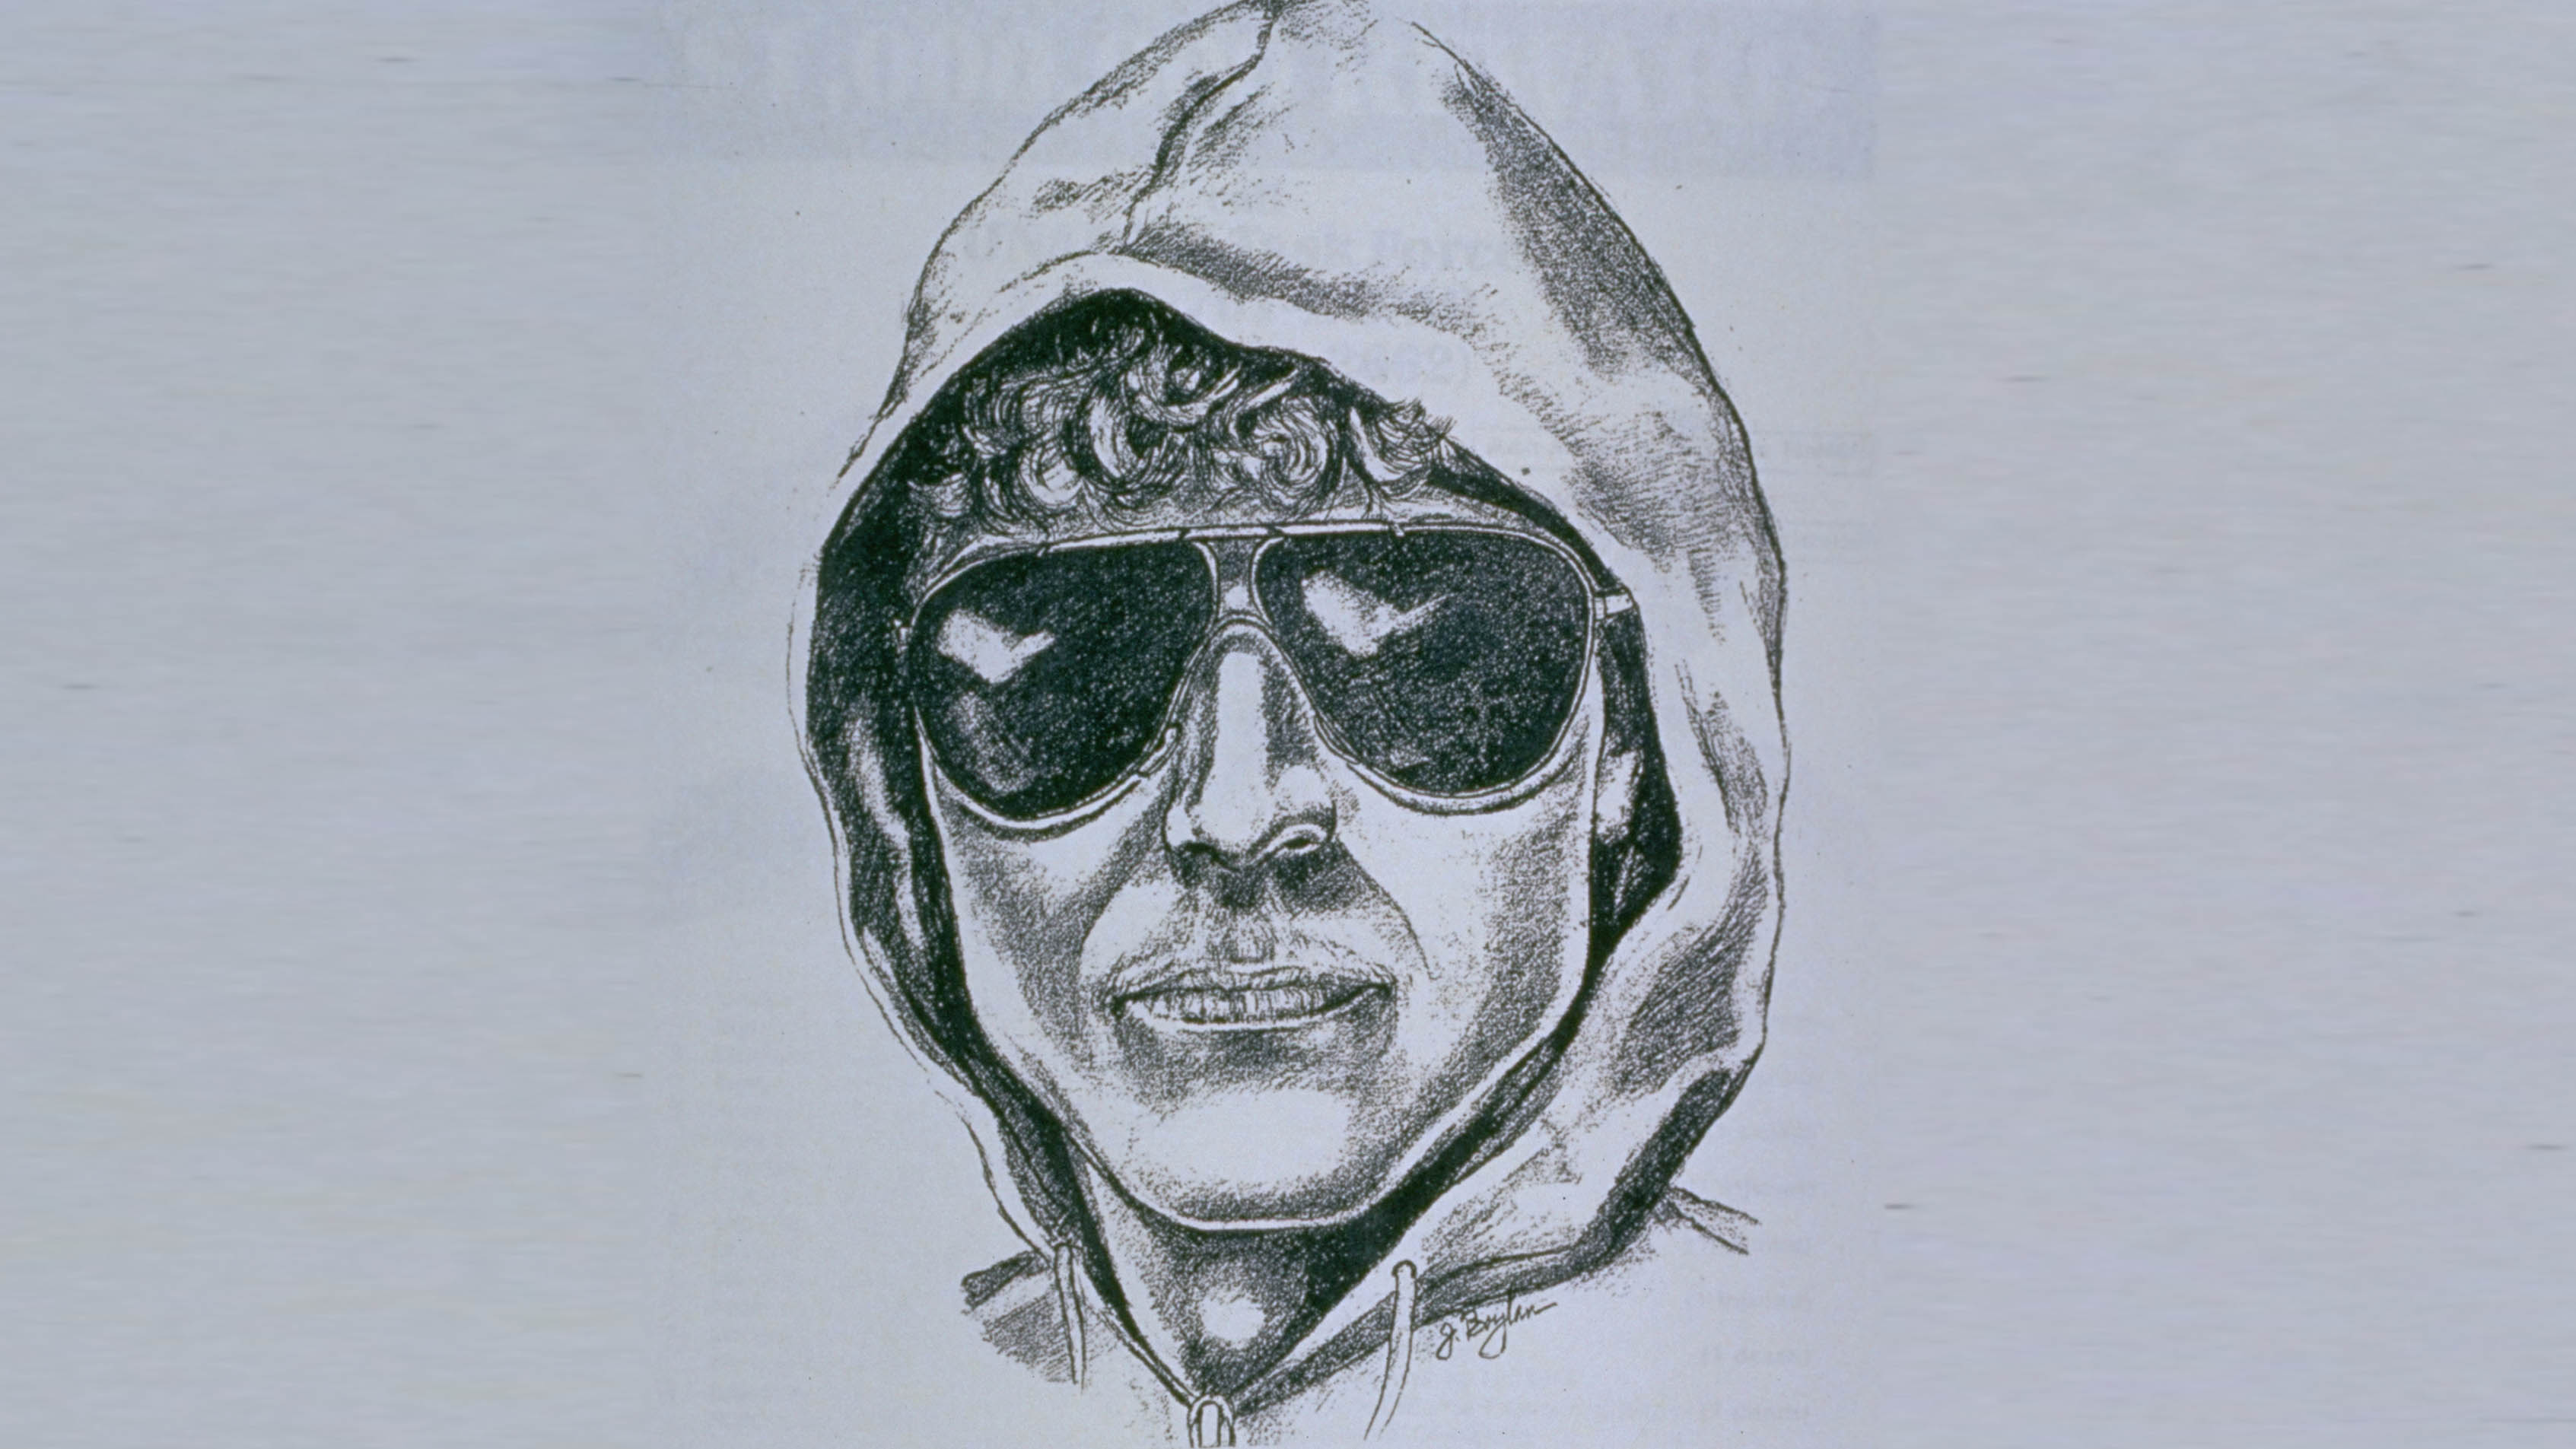 Ted Kaczynski: How a Child Genius Turned Into the Serial Killer and Domestic Terrorist Known as the Unabomber